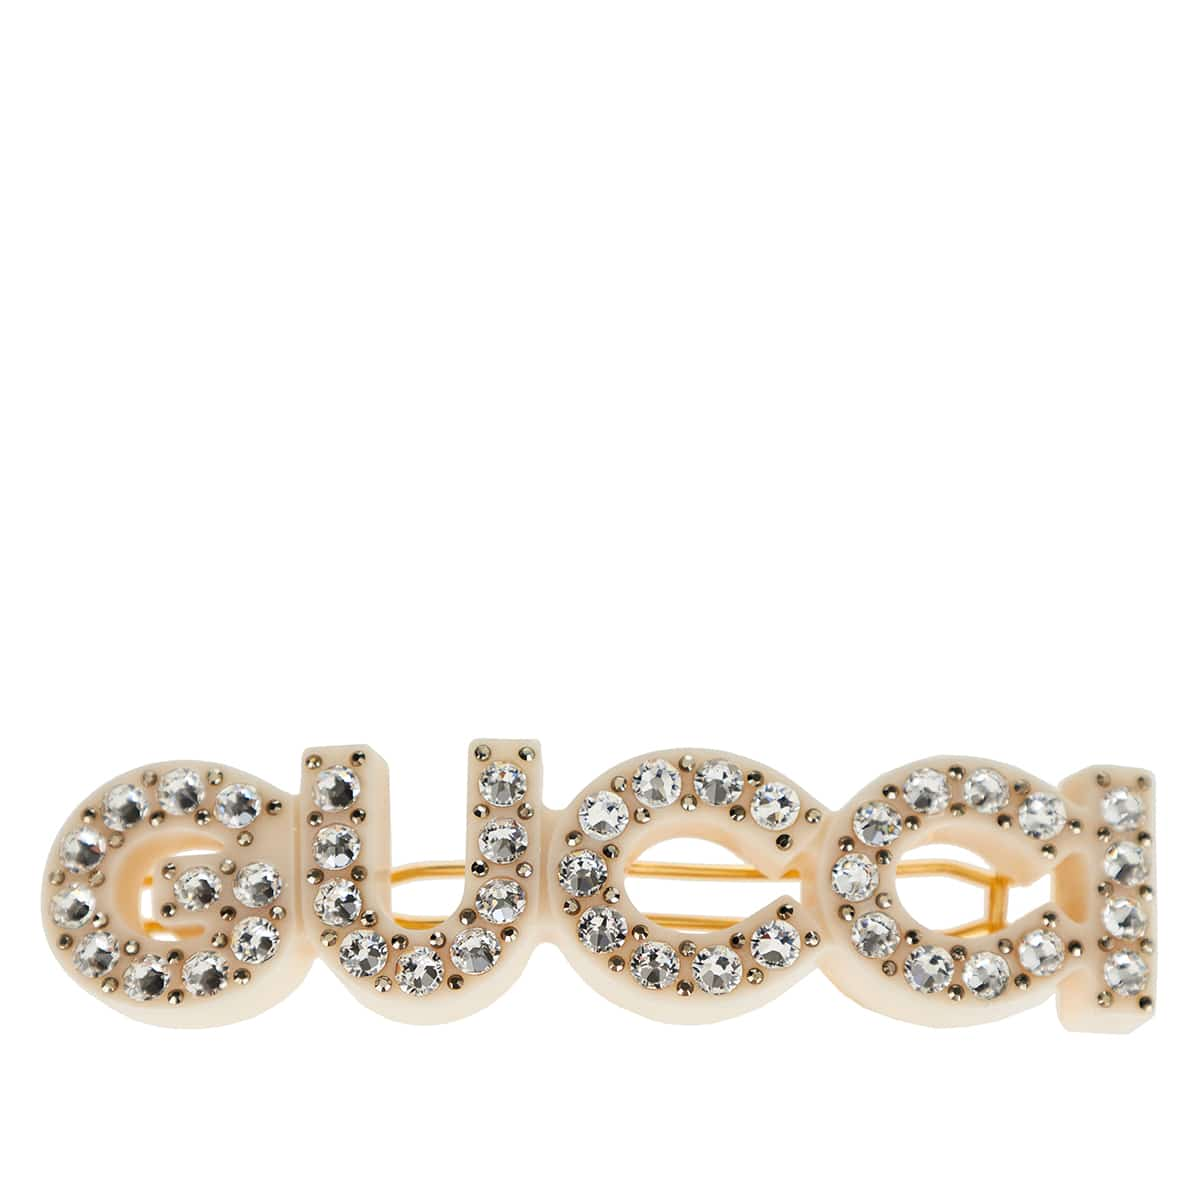 Gucci crystal-embellished hair clip